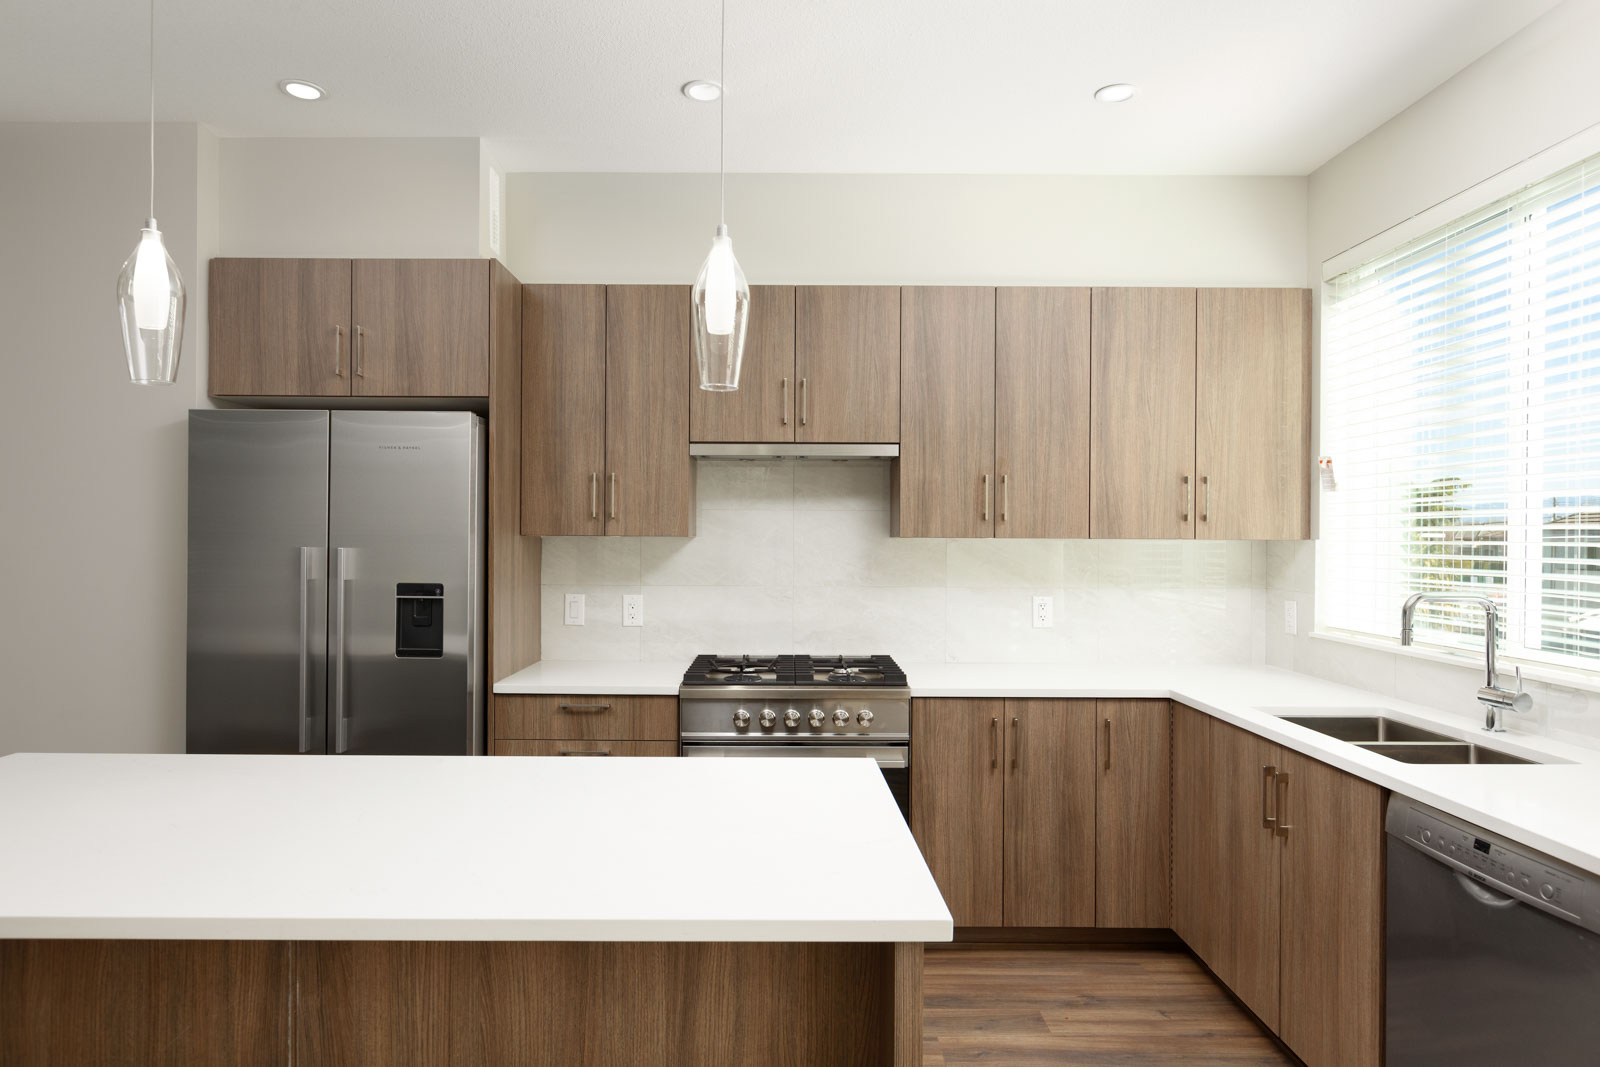 Newly renovated kitchen with butternut wood cabinetry in Richmond luxury rental townhome.